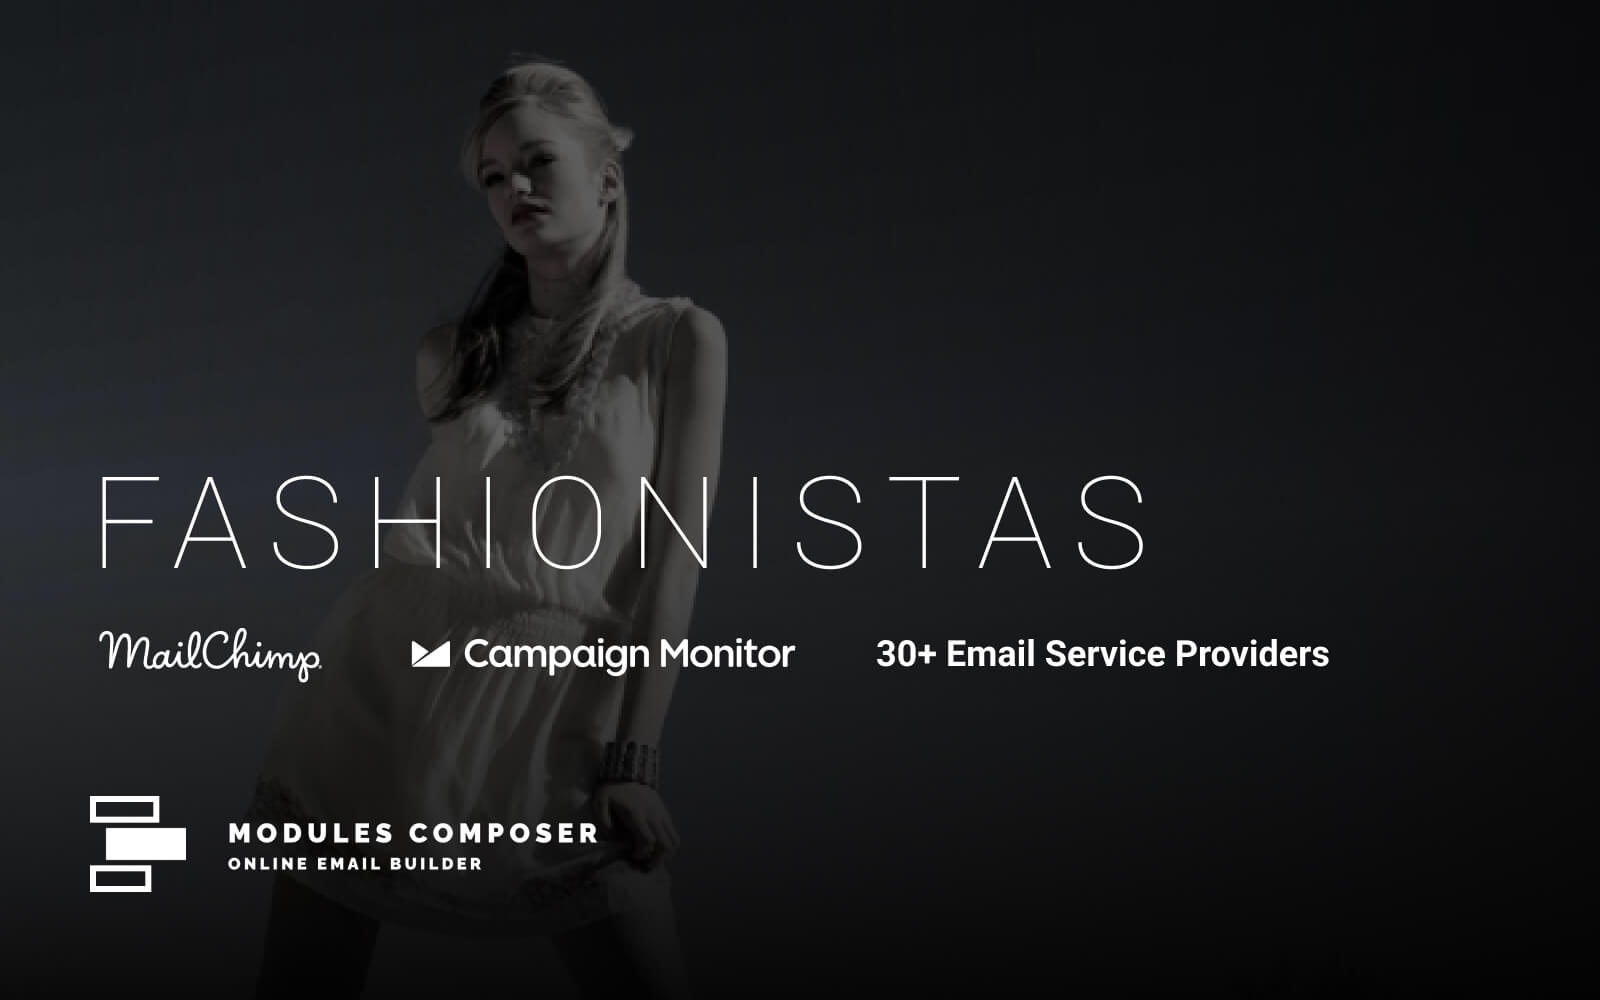 Fashionistas - Email with Online Builder Newsletter Template